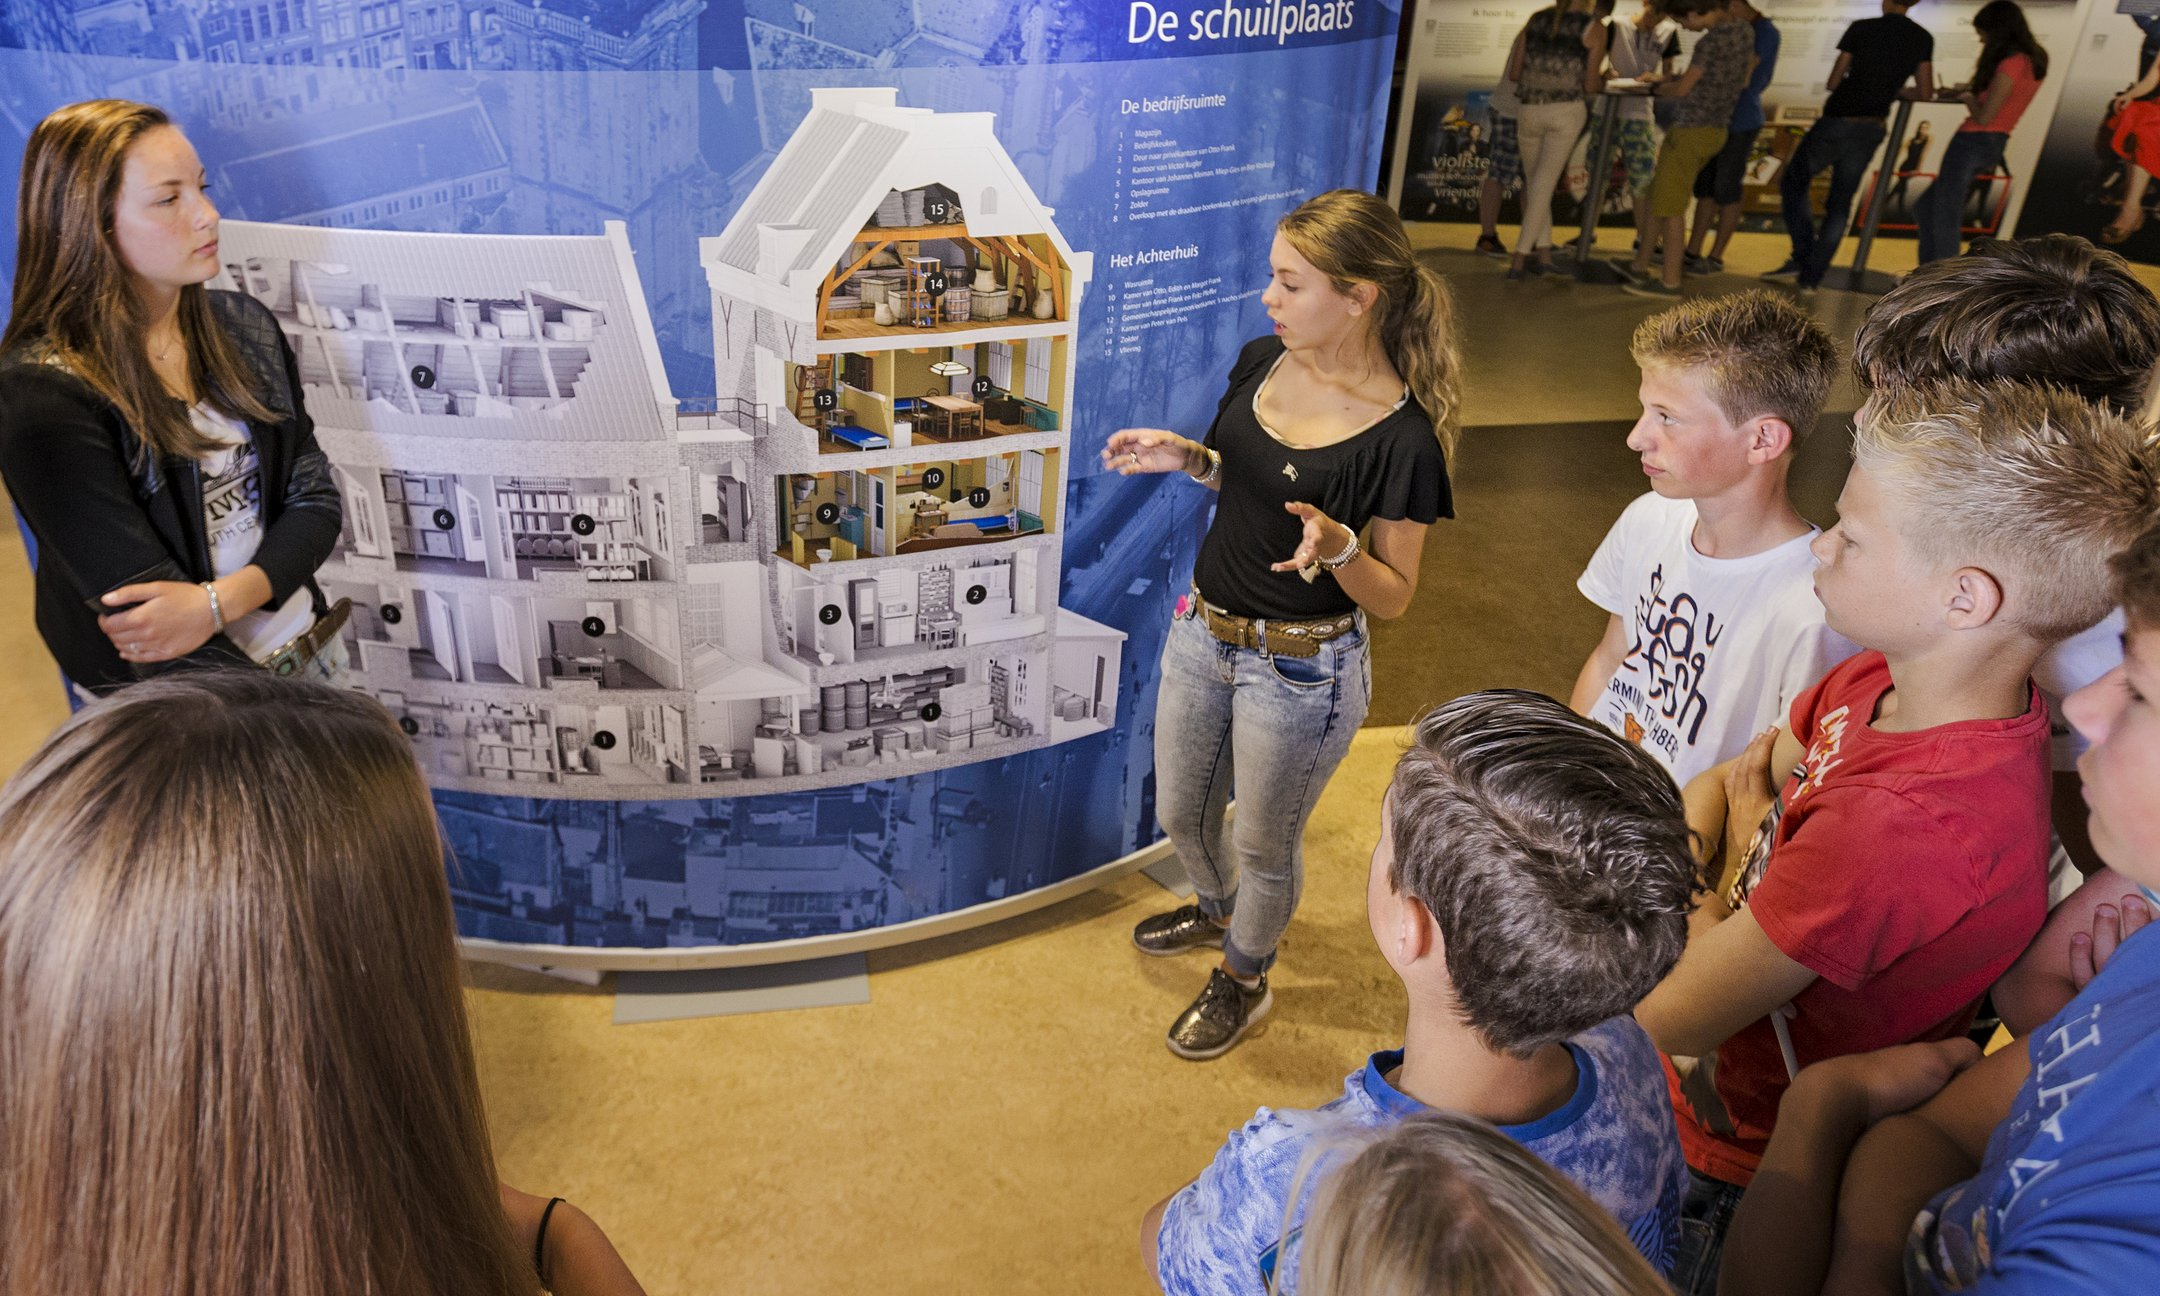 Peer guide in exhibition 'Let me be myself, the life story of Anne Frank'